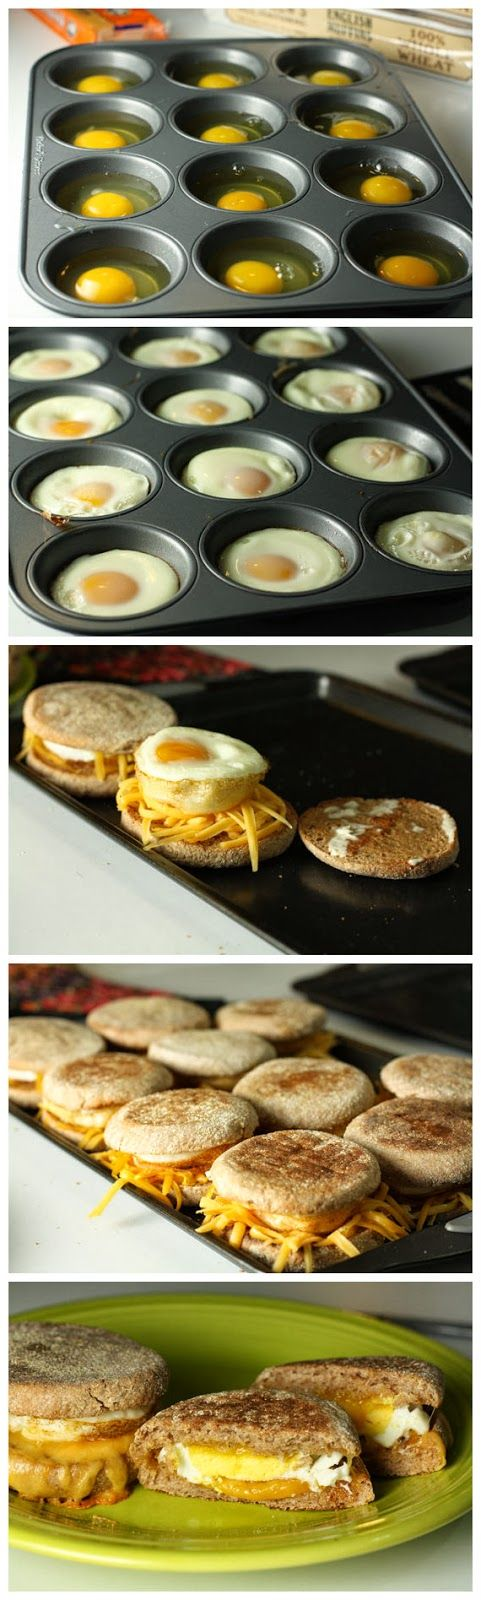 Egg and Cheese Breakfast Sandwiches - Truelifekitchen